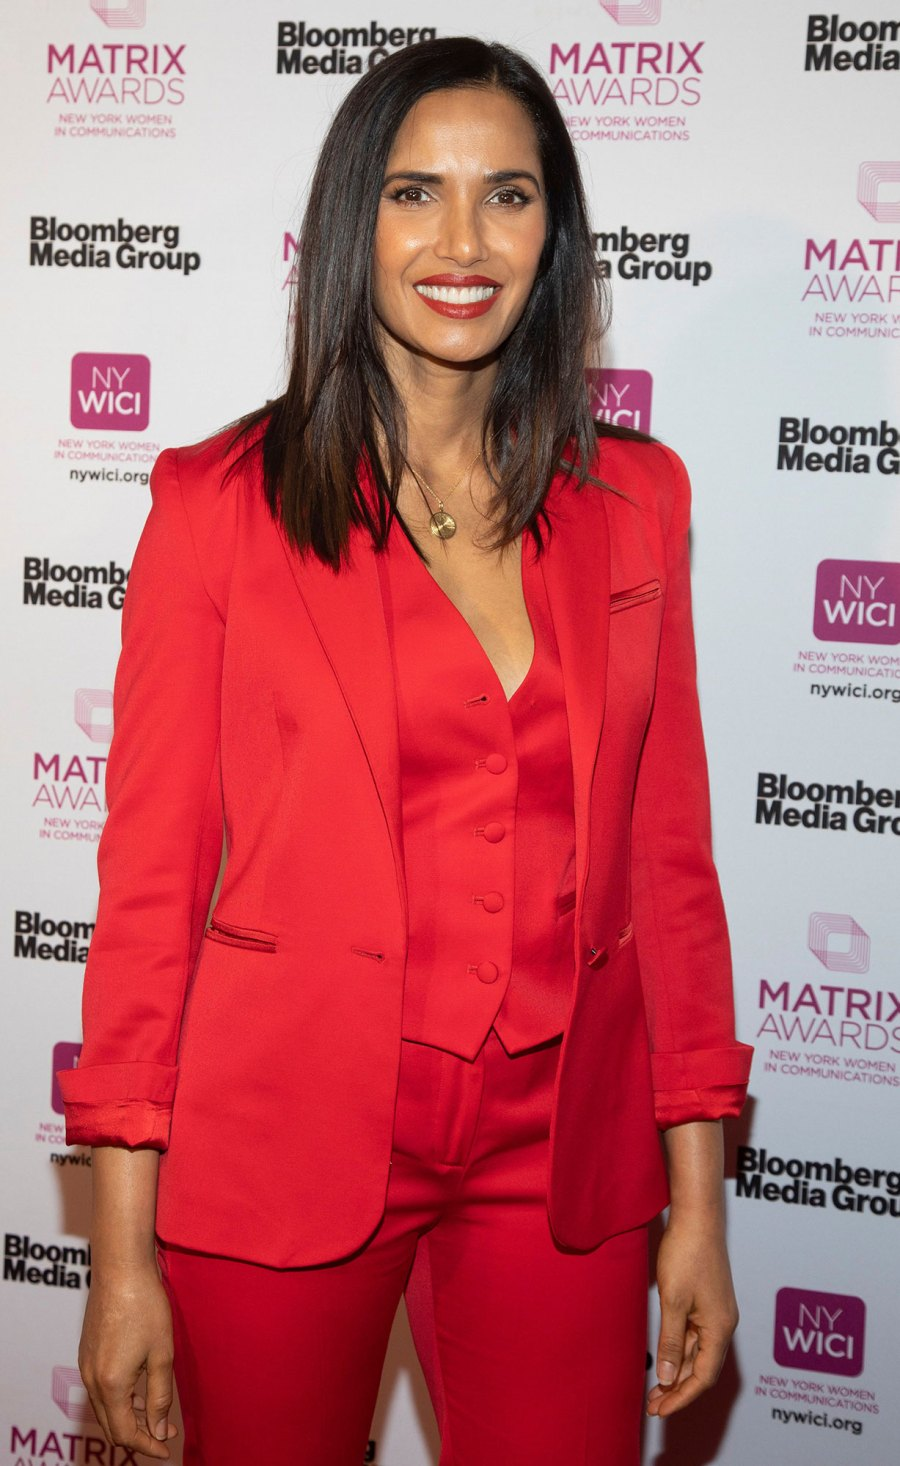 Padma Lakshmi Stars Share What They Eat for Lunch